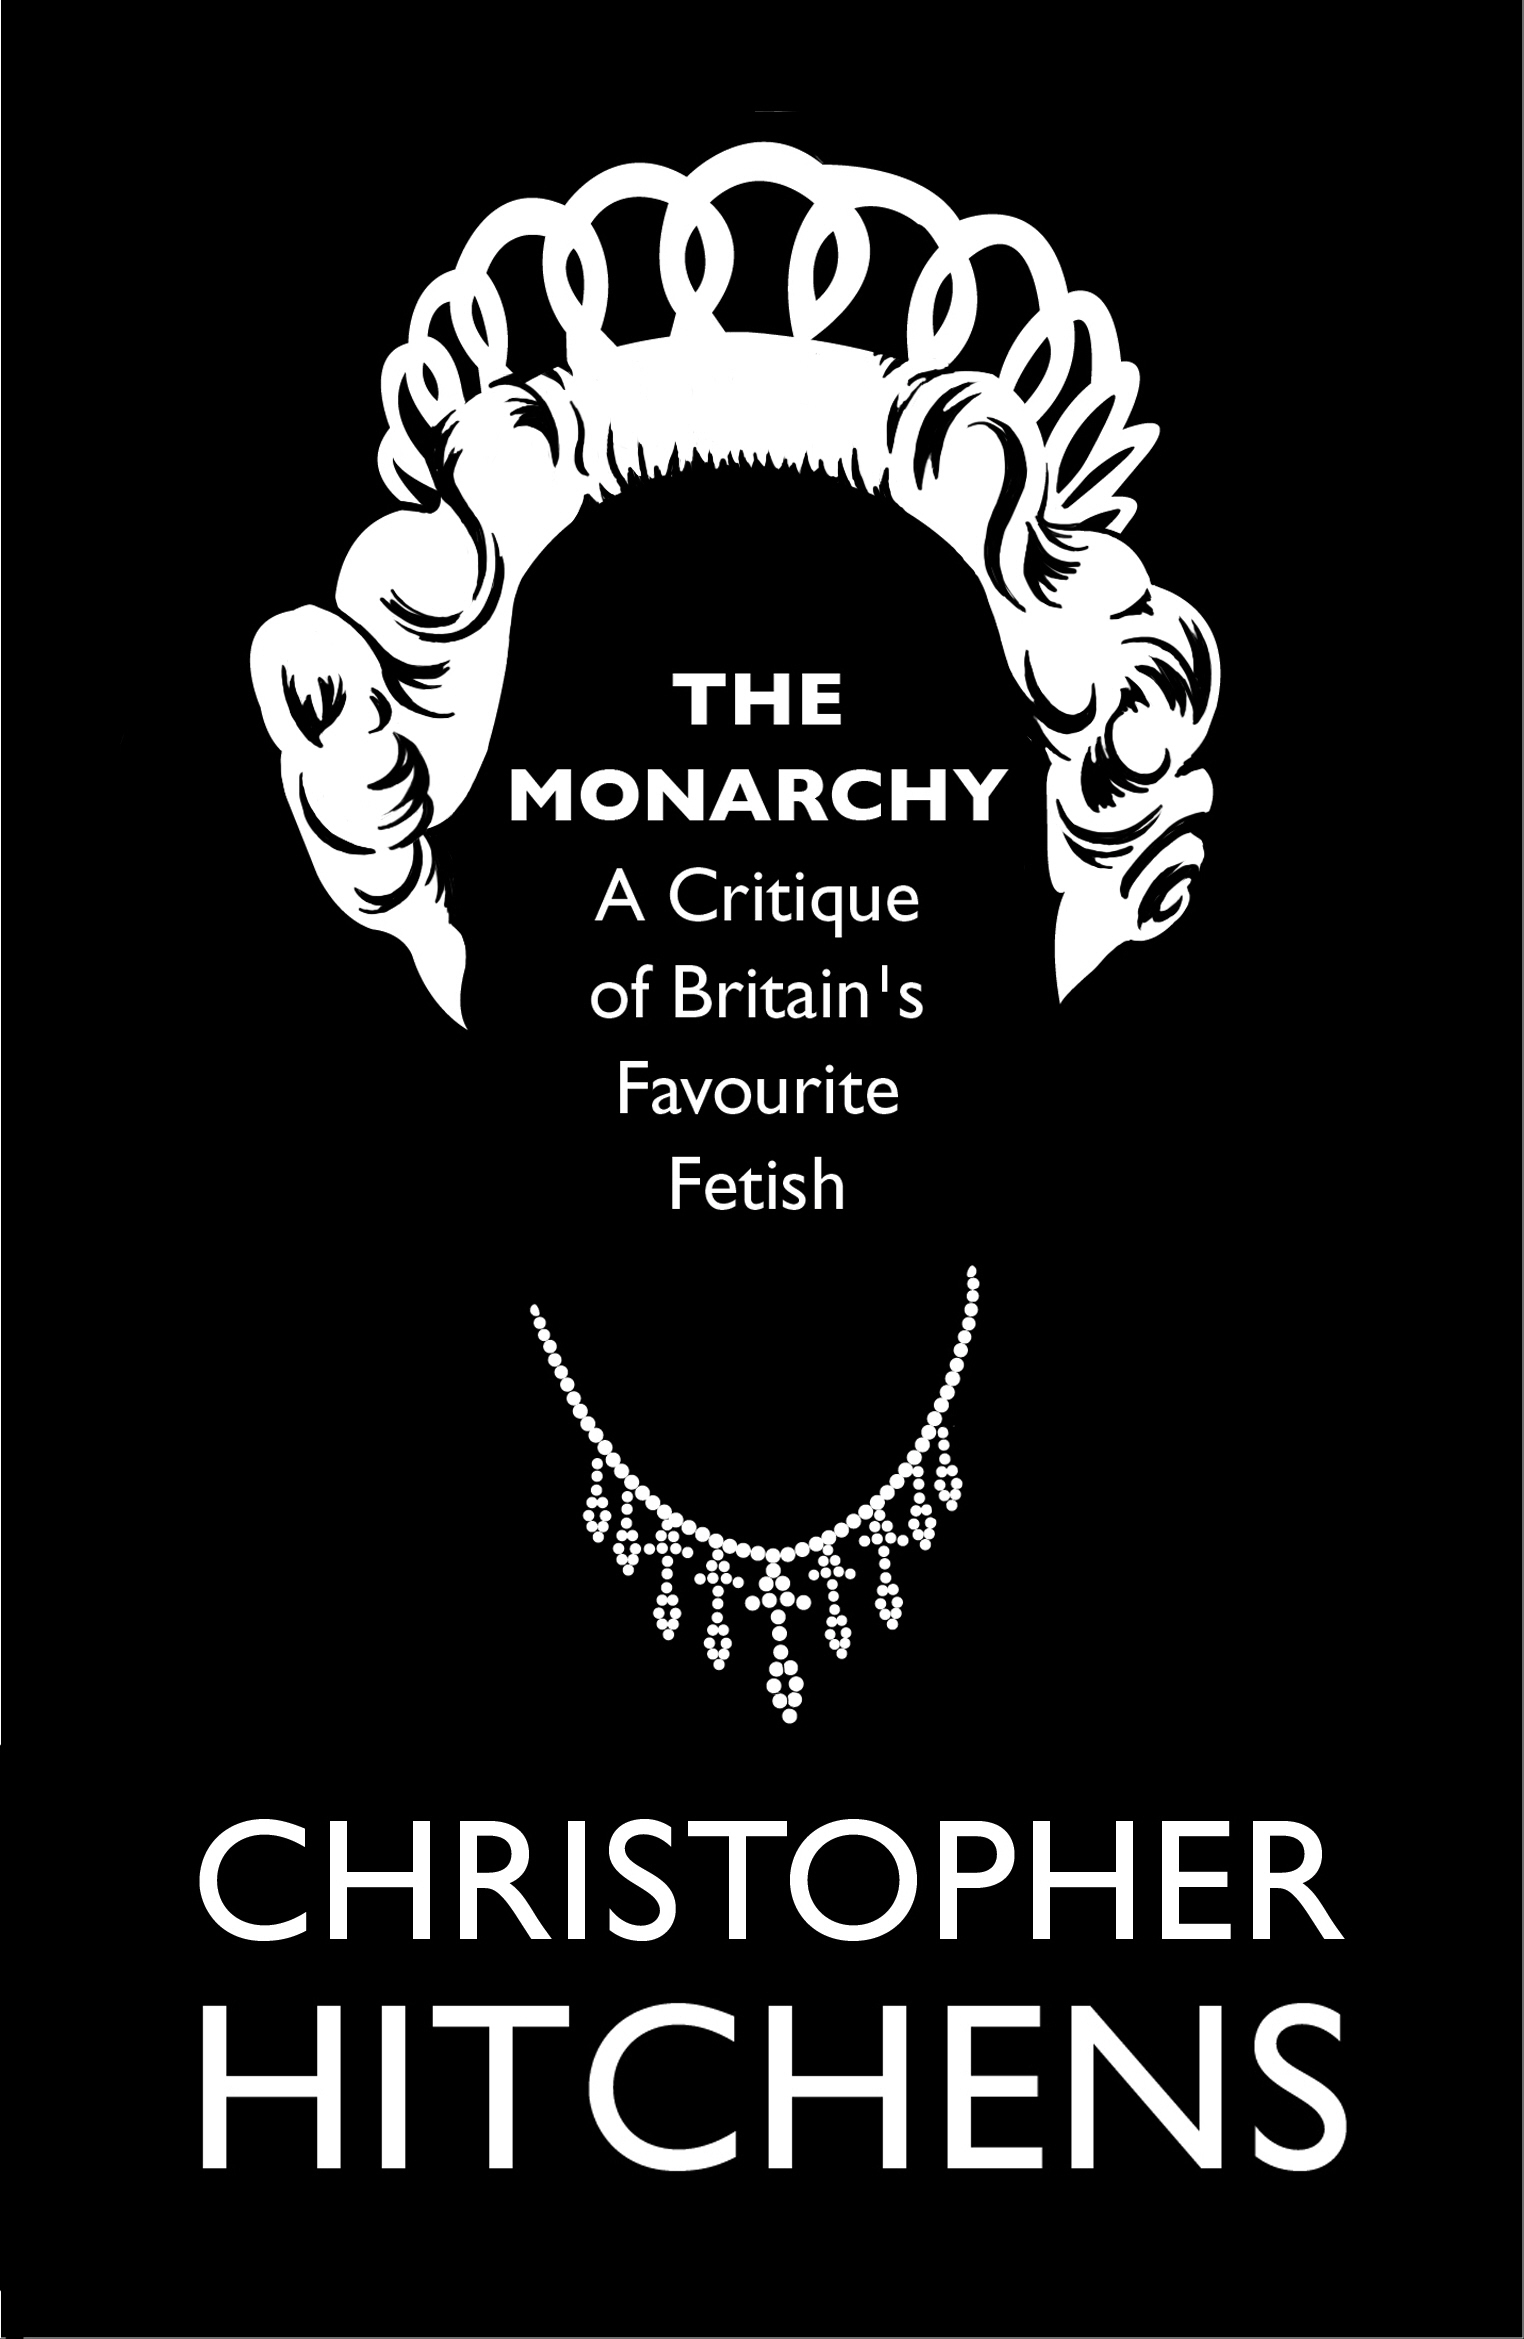 The Monarchy A Critique of Britain's Favourite Fetish